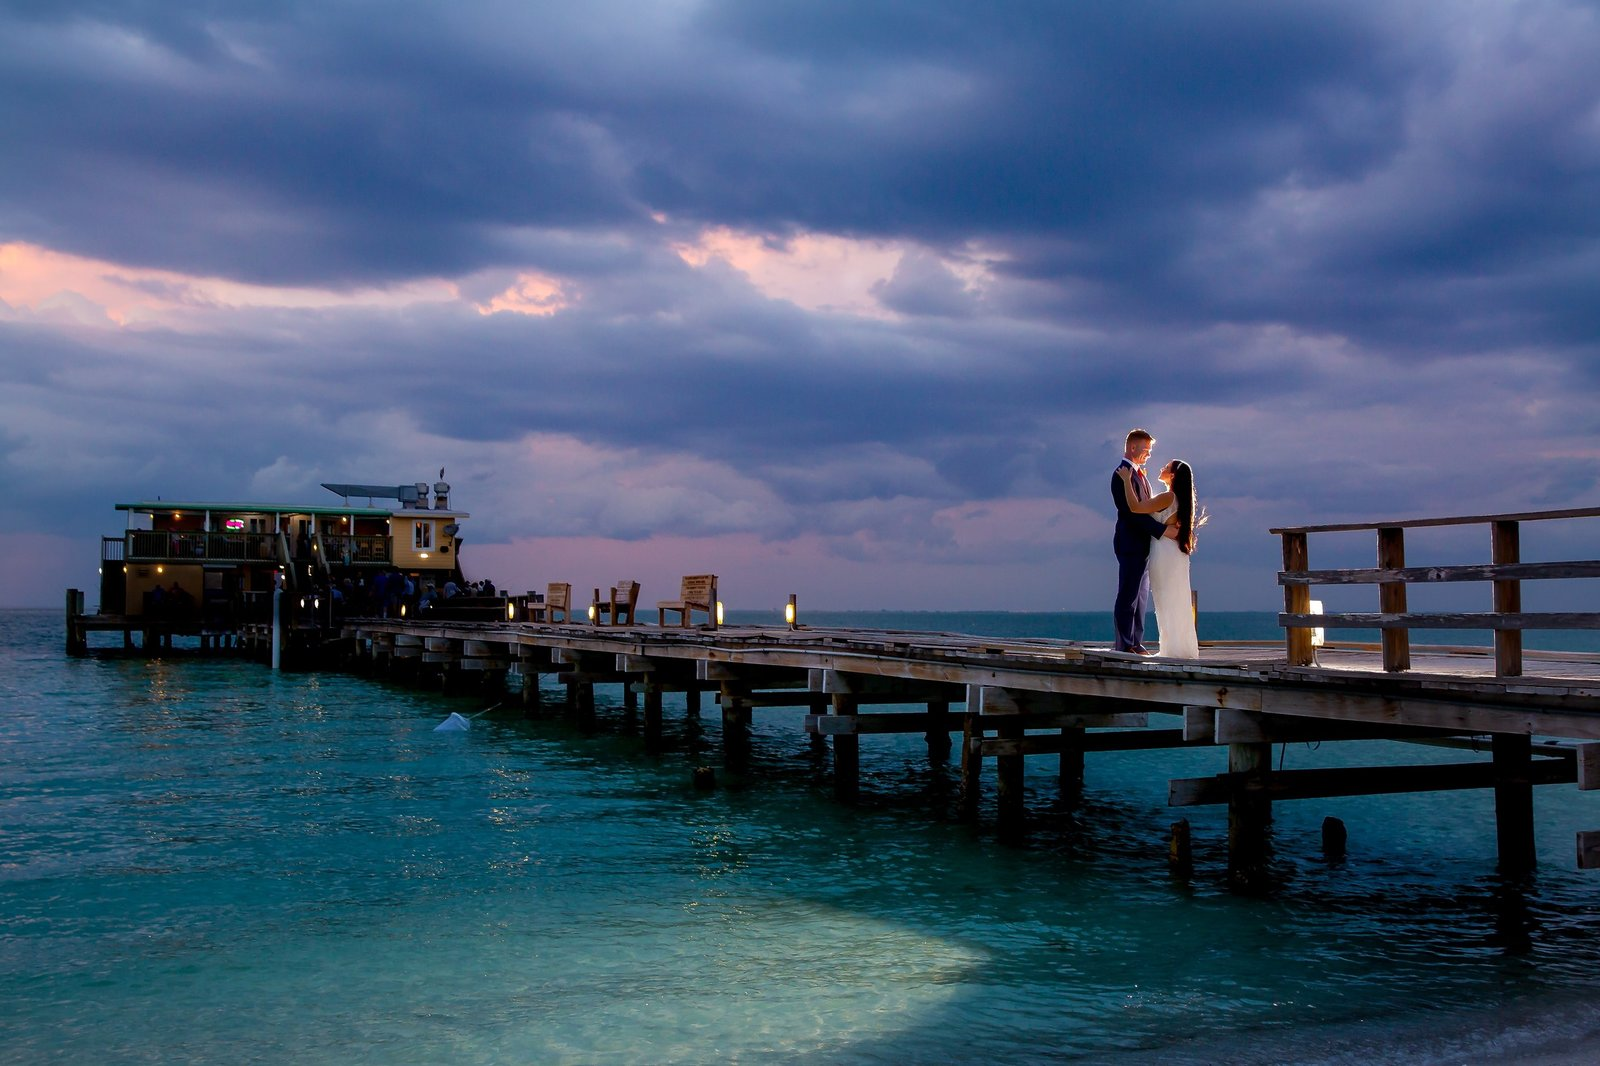 Rod and Reel Pier at Sunset with bride and groom on pier backlit